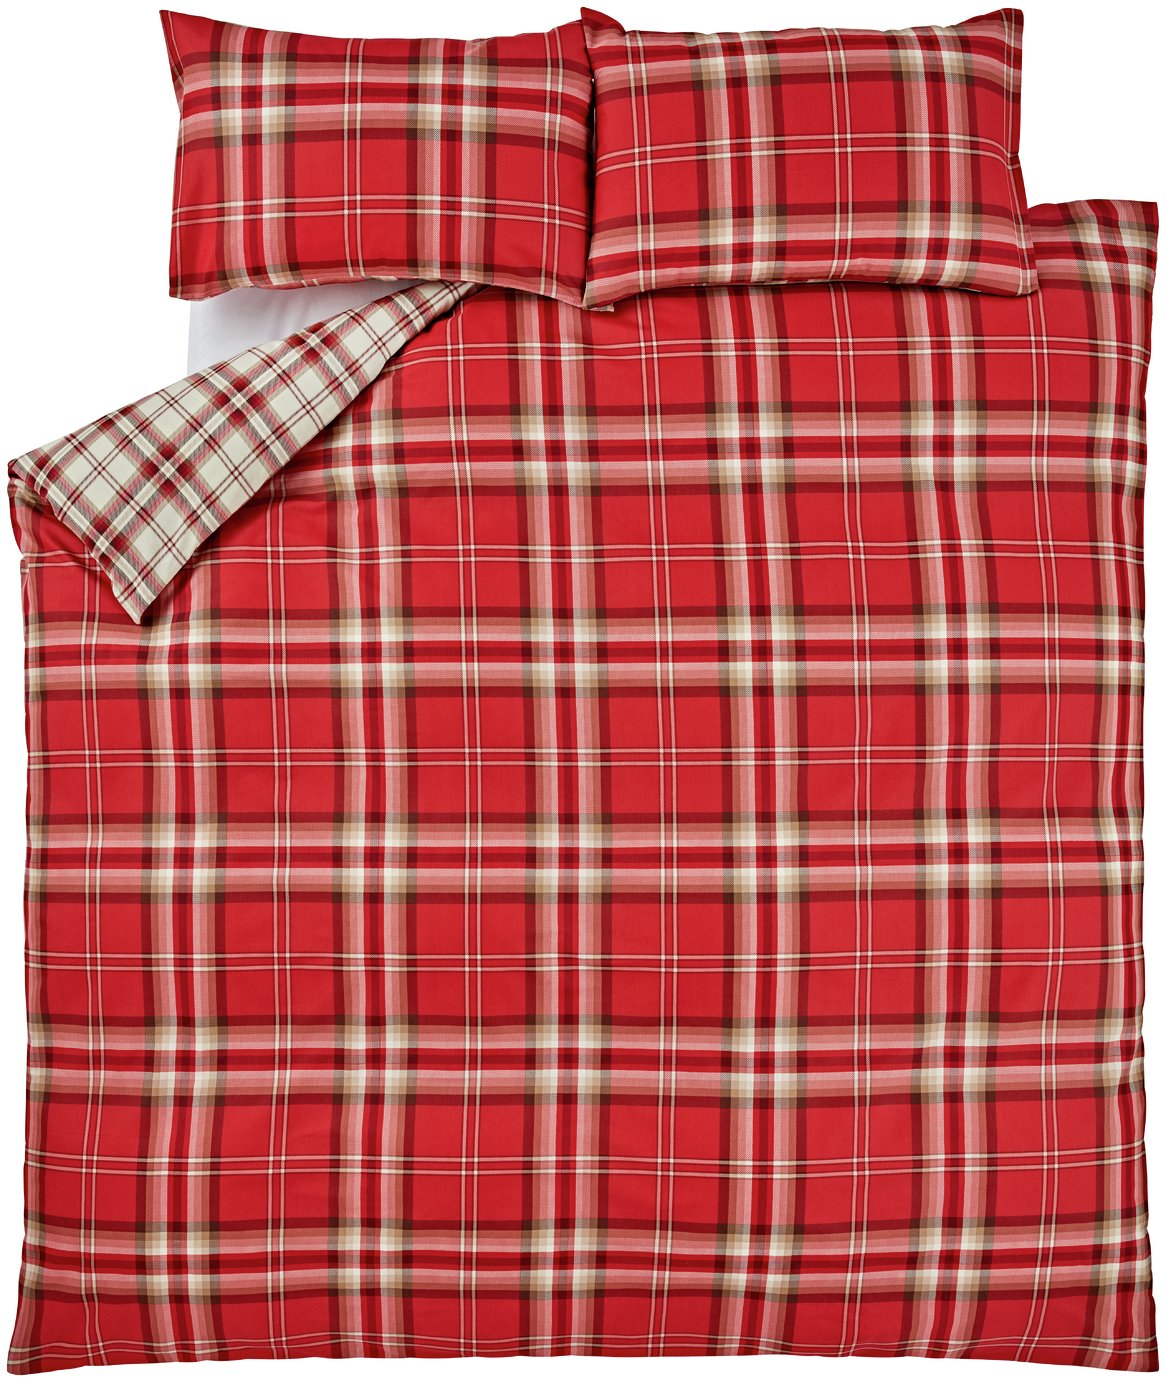 catherine lansfield kelso red bedding set  single